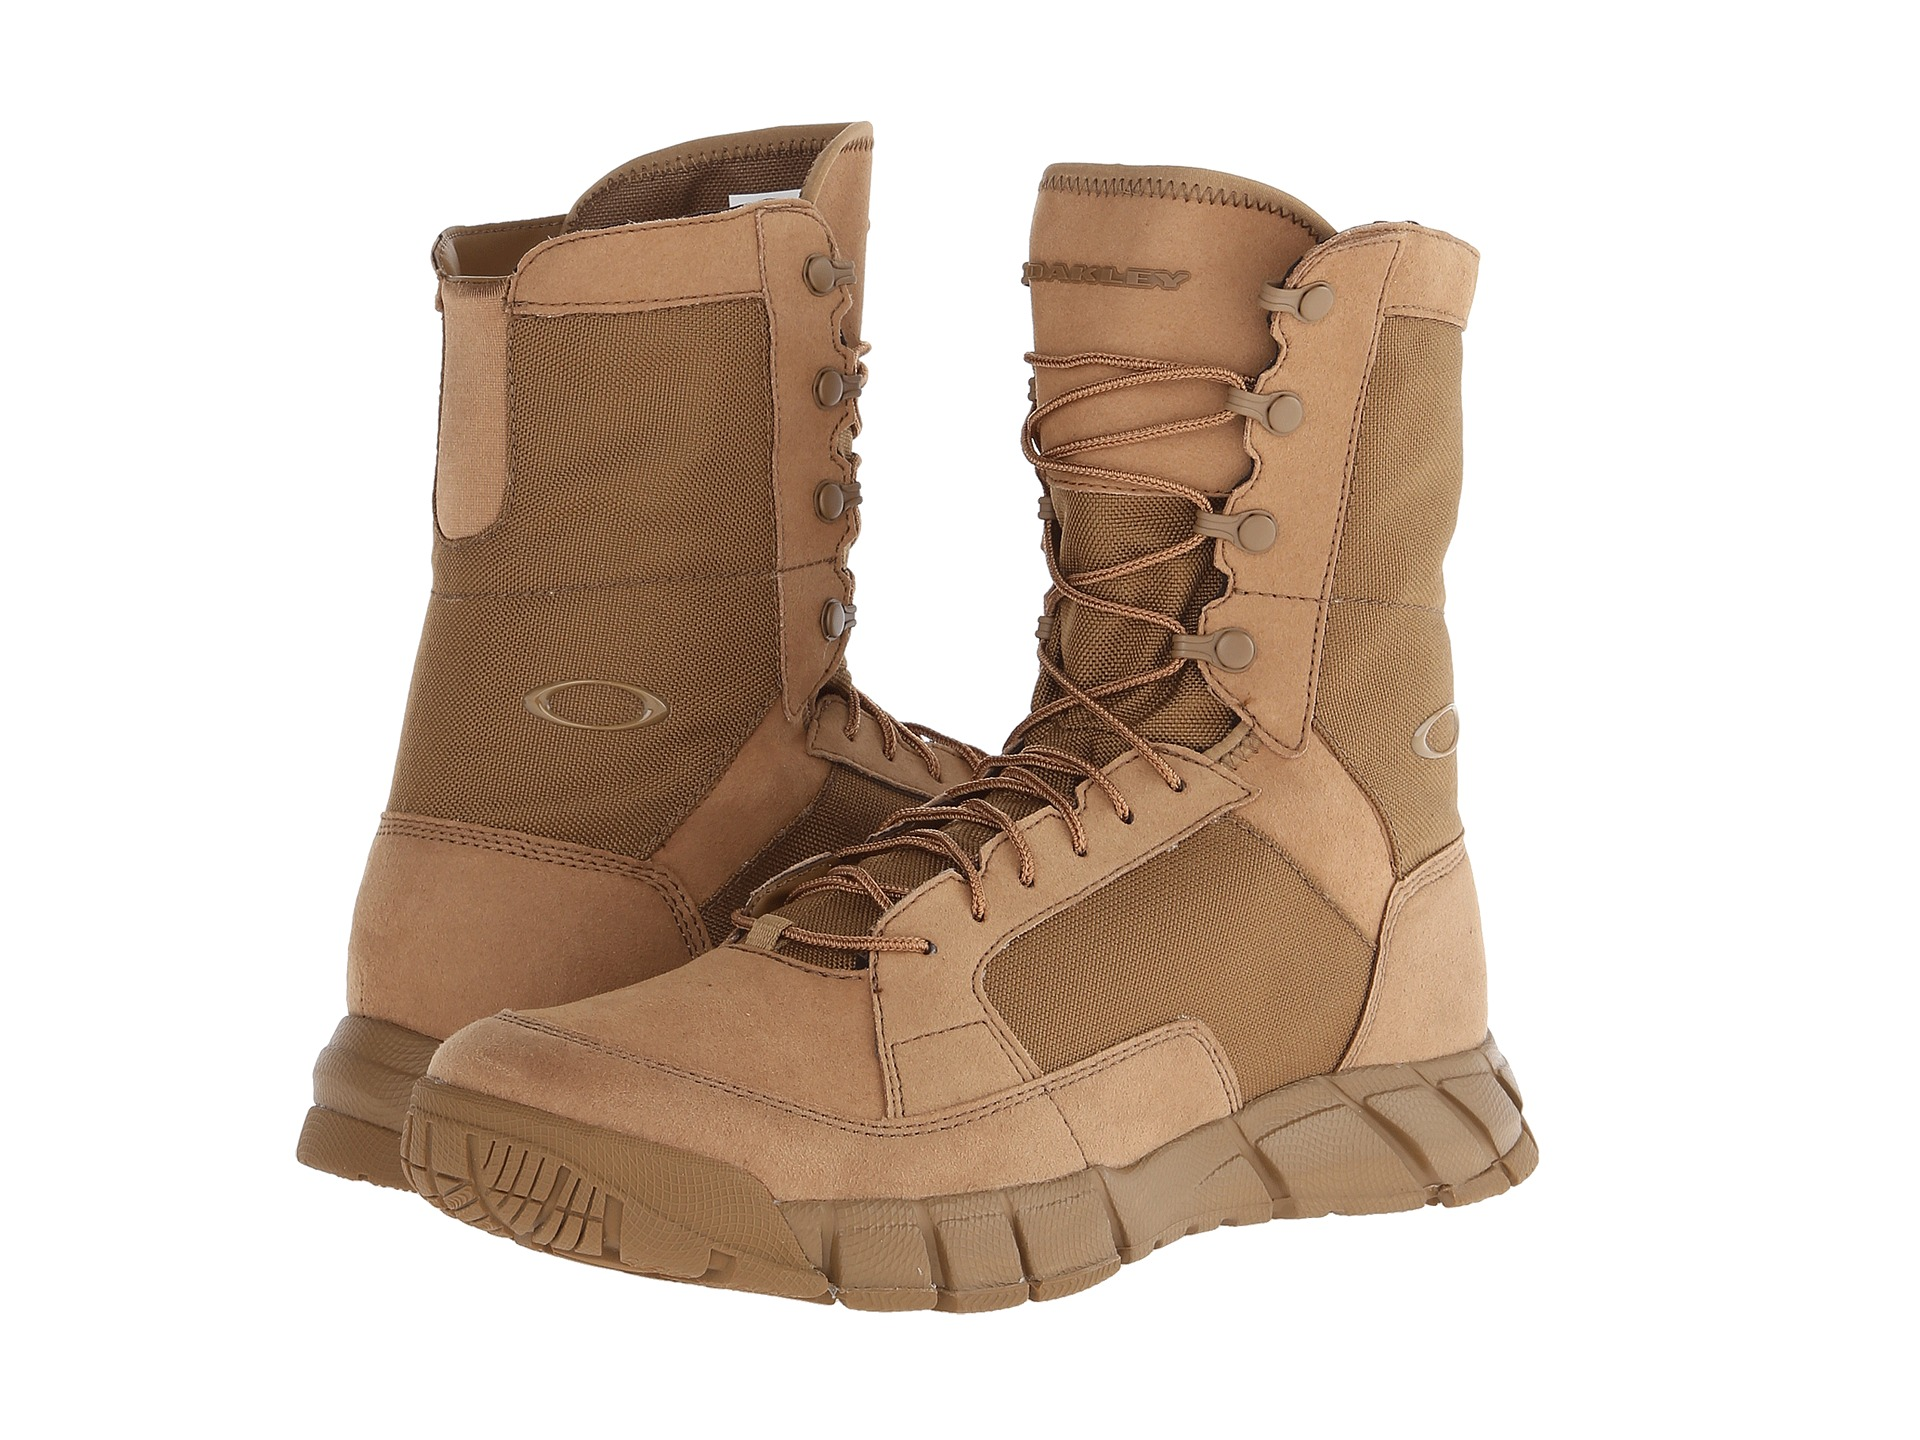 Oakley Light Assault Boot Zapposcom Free Shipping BOTH Ways